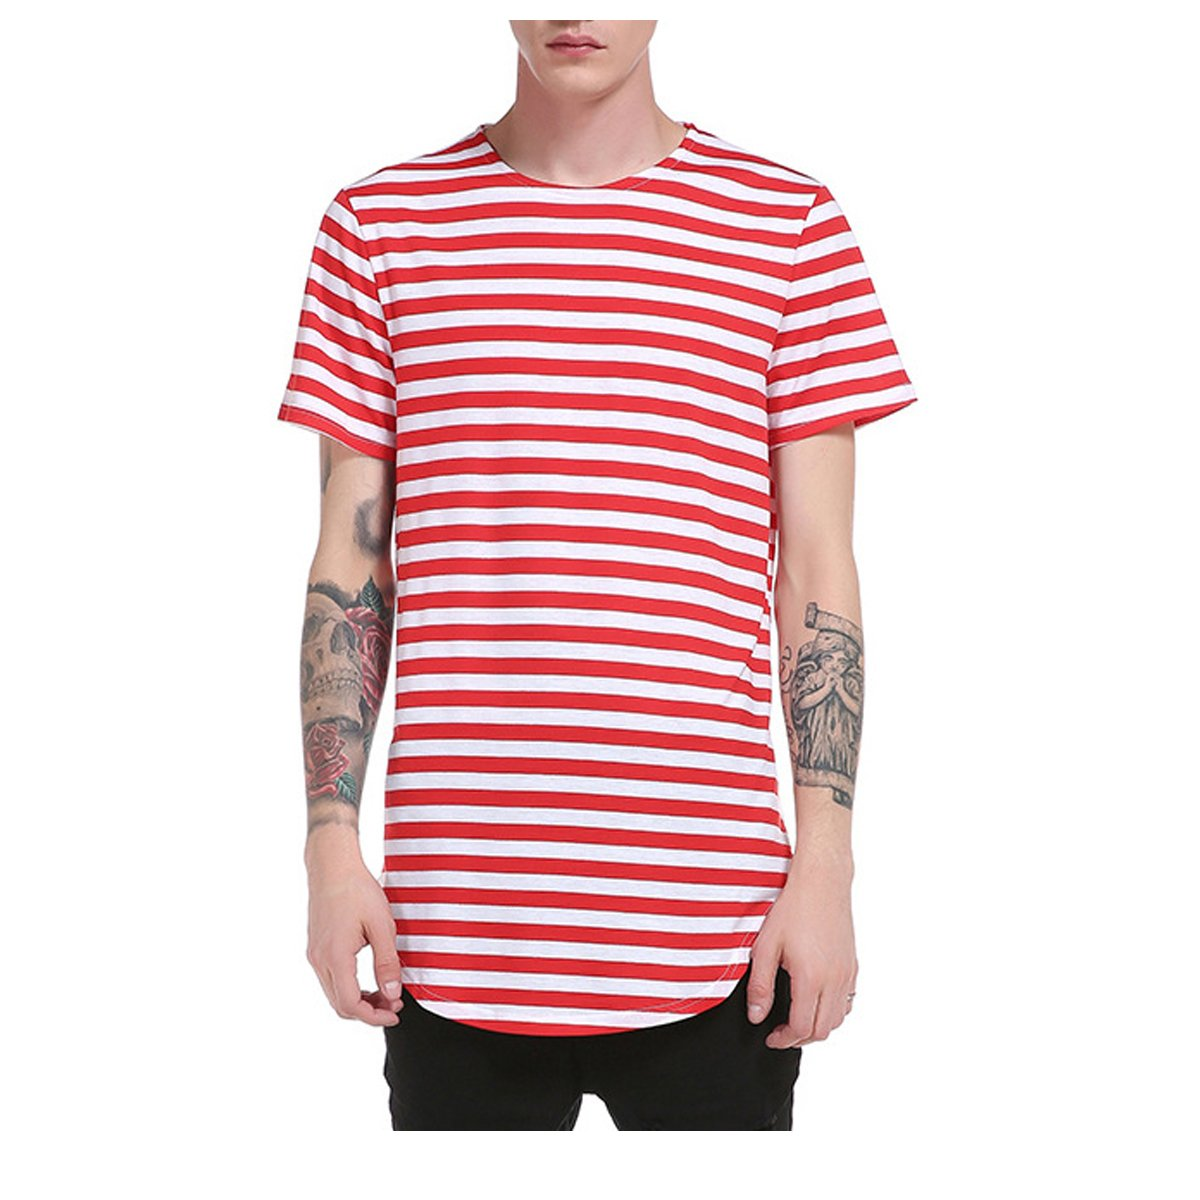 fa576148 Mirecoo Mens Short Sleeve Red & White Striped Striped T-Shirt Light Grey  Black Stripe Top & Tees